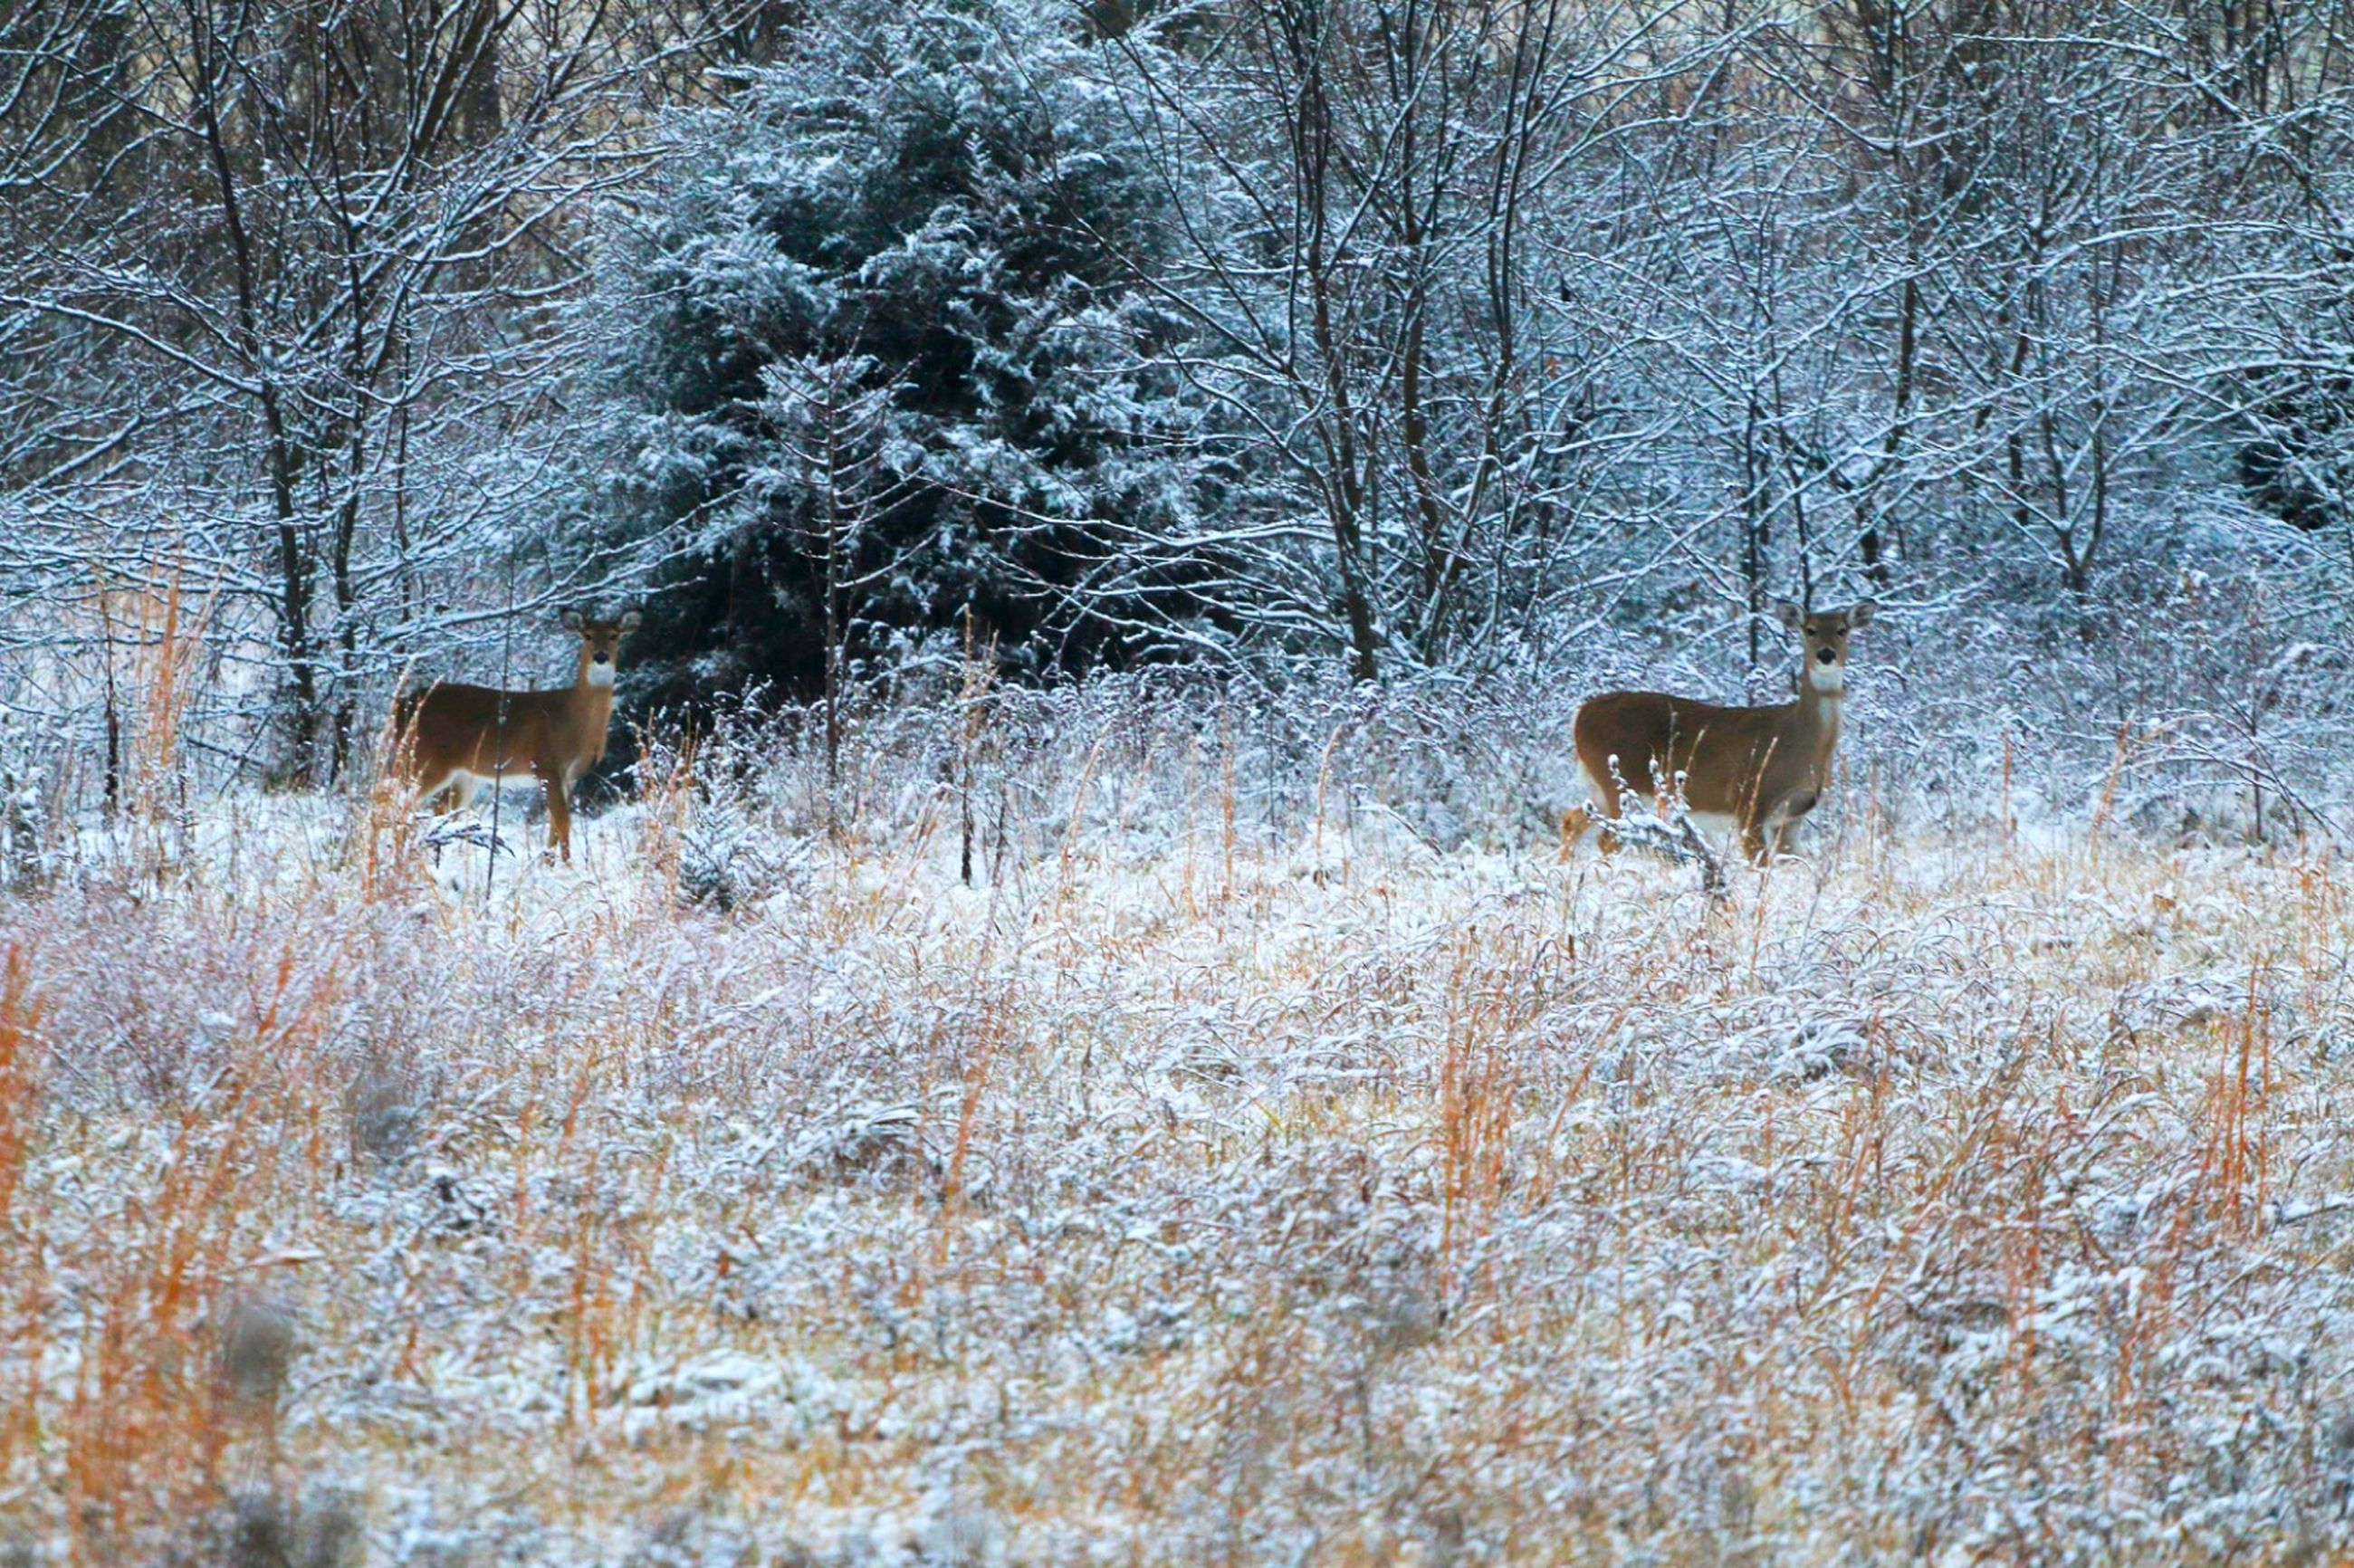 animal themes, winter, one animal, bare tree, snow, nature, cold temperature, mammal, animals in the wild, deer, field, animal wildlife, no people, outdoors, day, tree, stag, grass, domestic animals, beauty in nature